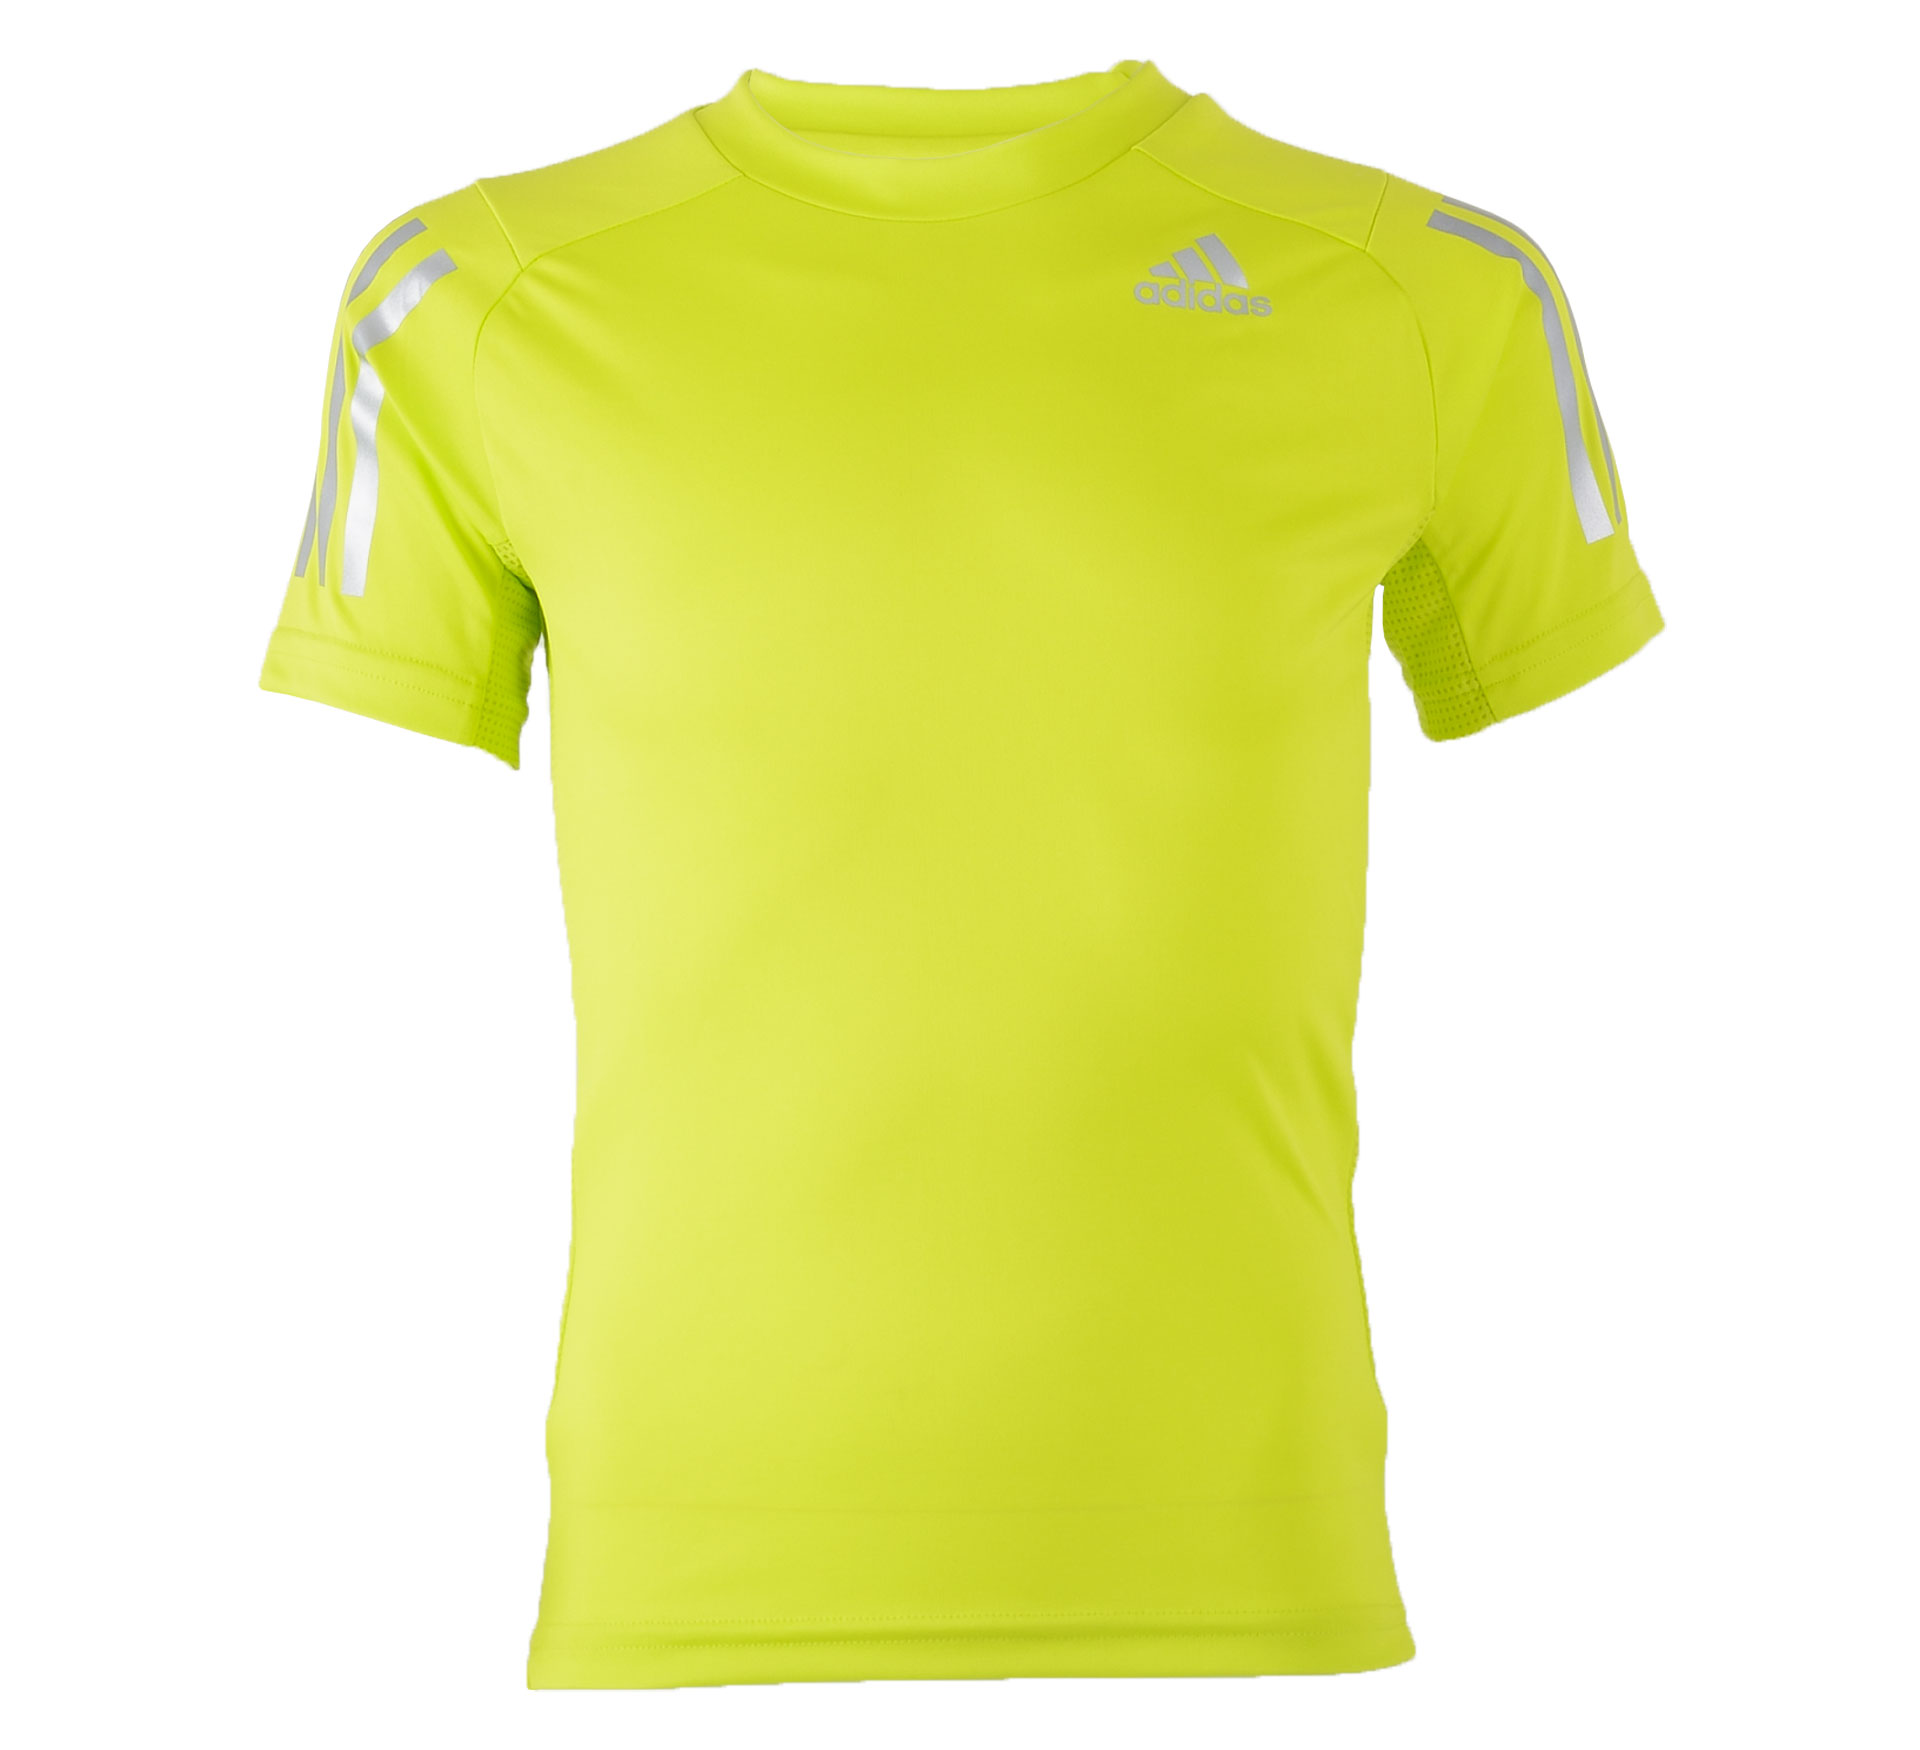 Adidas  YB Trainings Tee lime groen - zilver